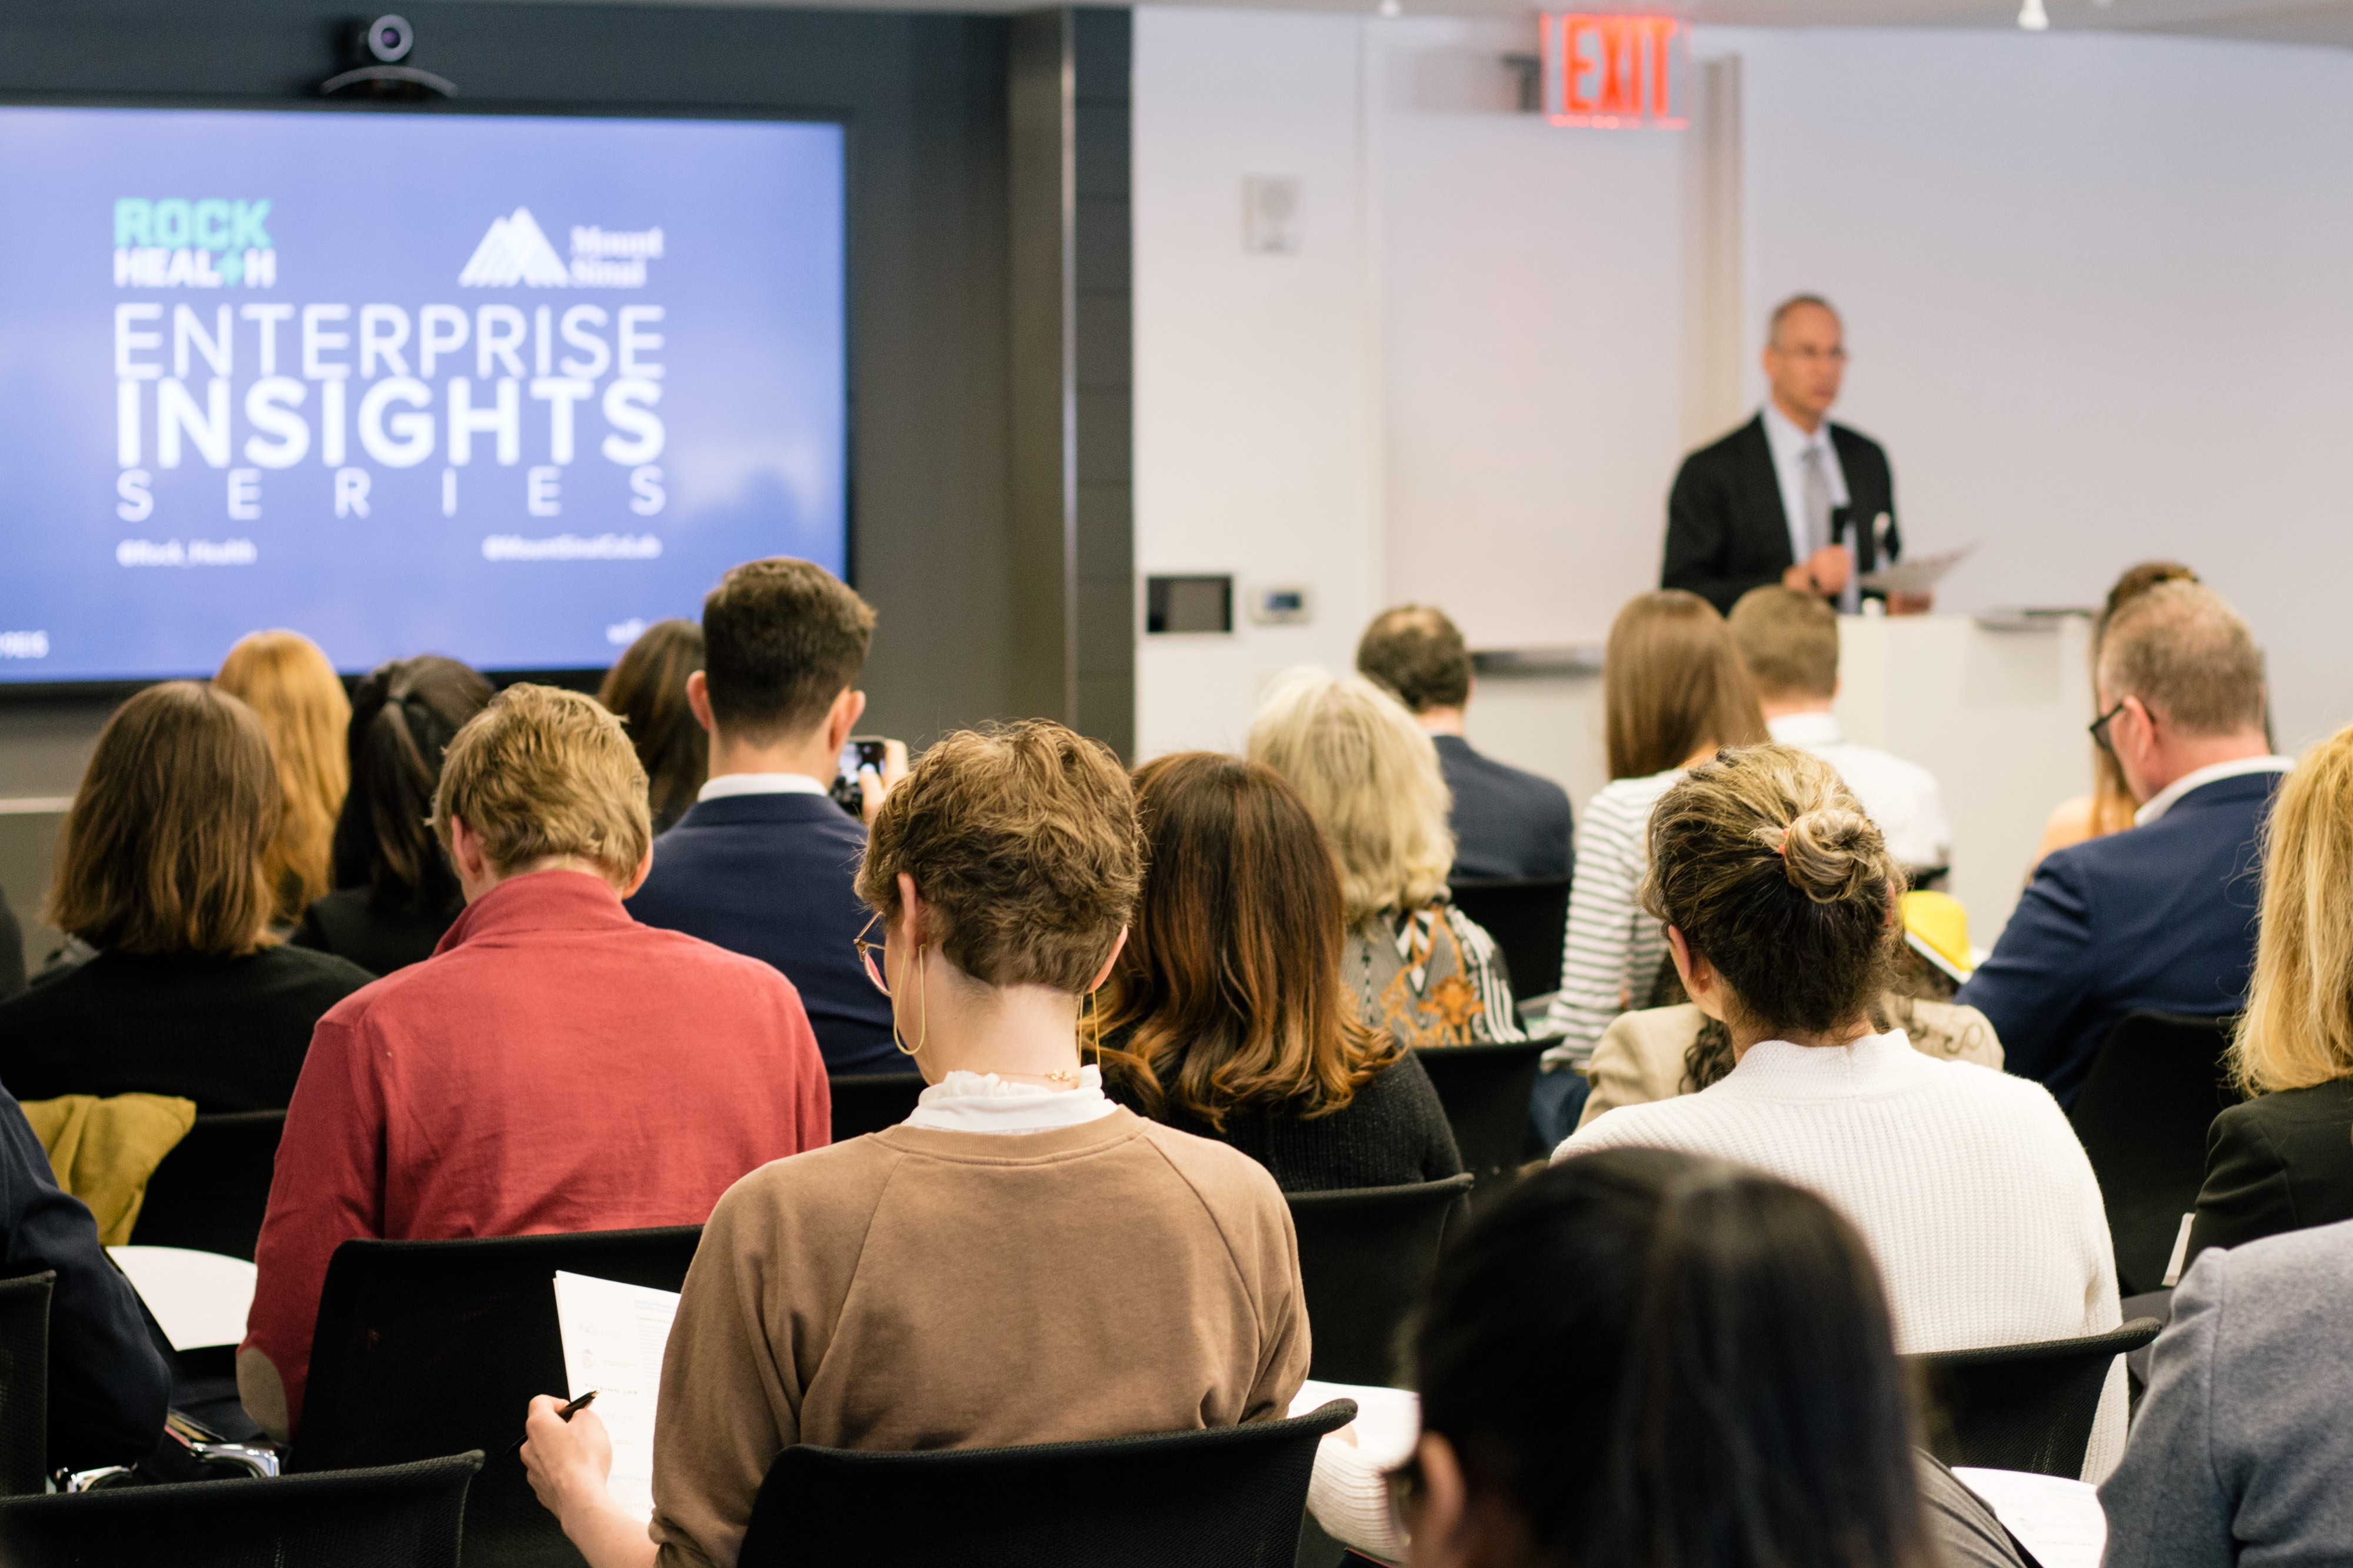 Rock Health And Mount Sinai Enterprise Insights Series: NYC